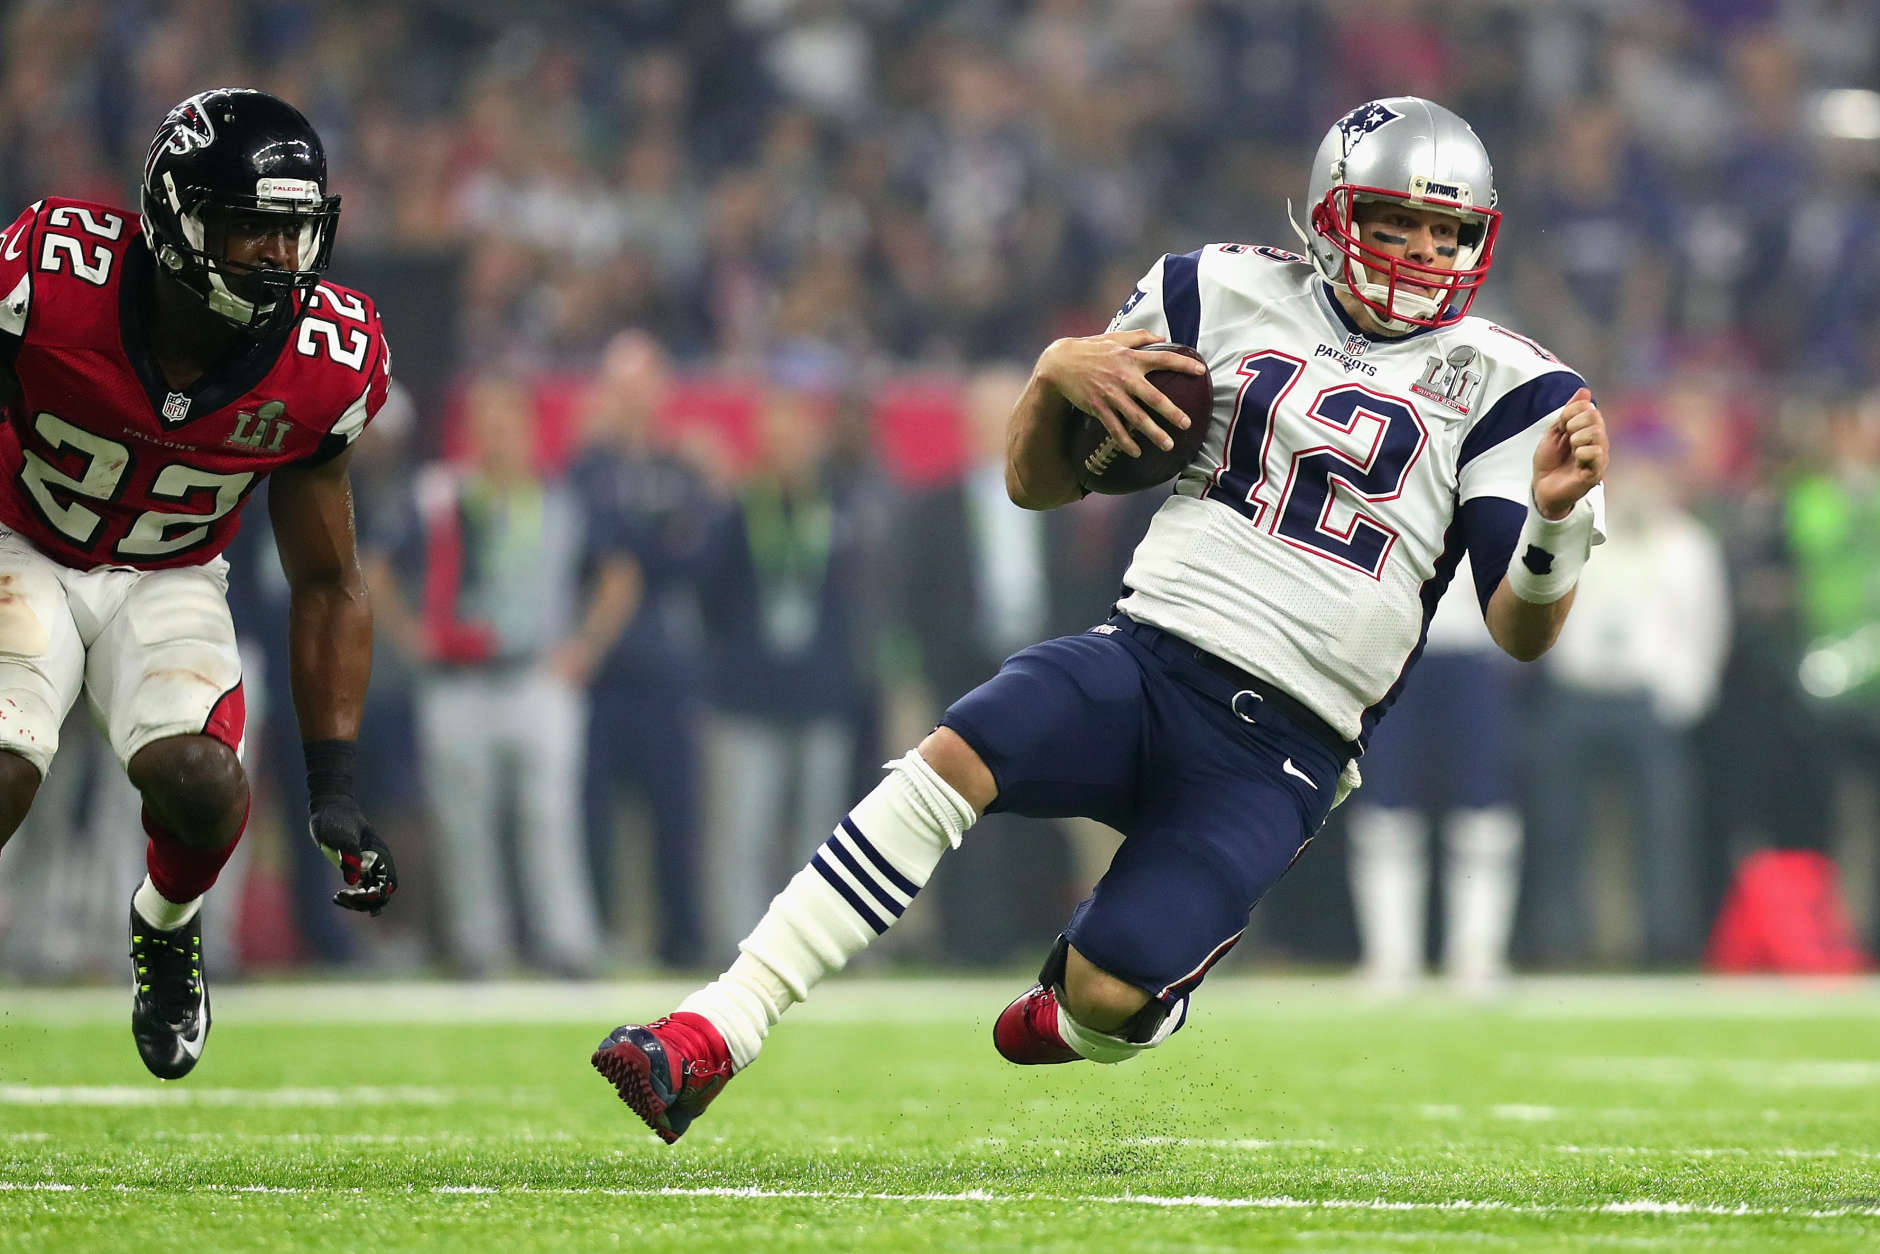 HOUSTON, TX - FEBRUARY 05:  Tom Brady #12 of the New England Patriots runs for a first down against the Atlanta Falcons in the third quarter during Super Bowl 51 at NRG Stadium on February 5, 2017 in Houston, Texas.  (Photo by Tom Pennington/Getty Images)